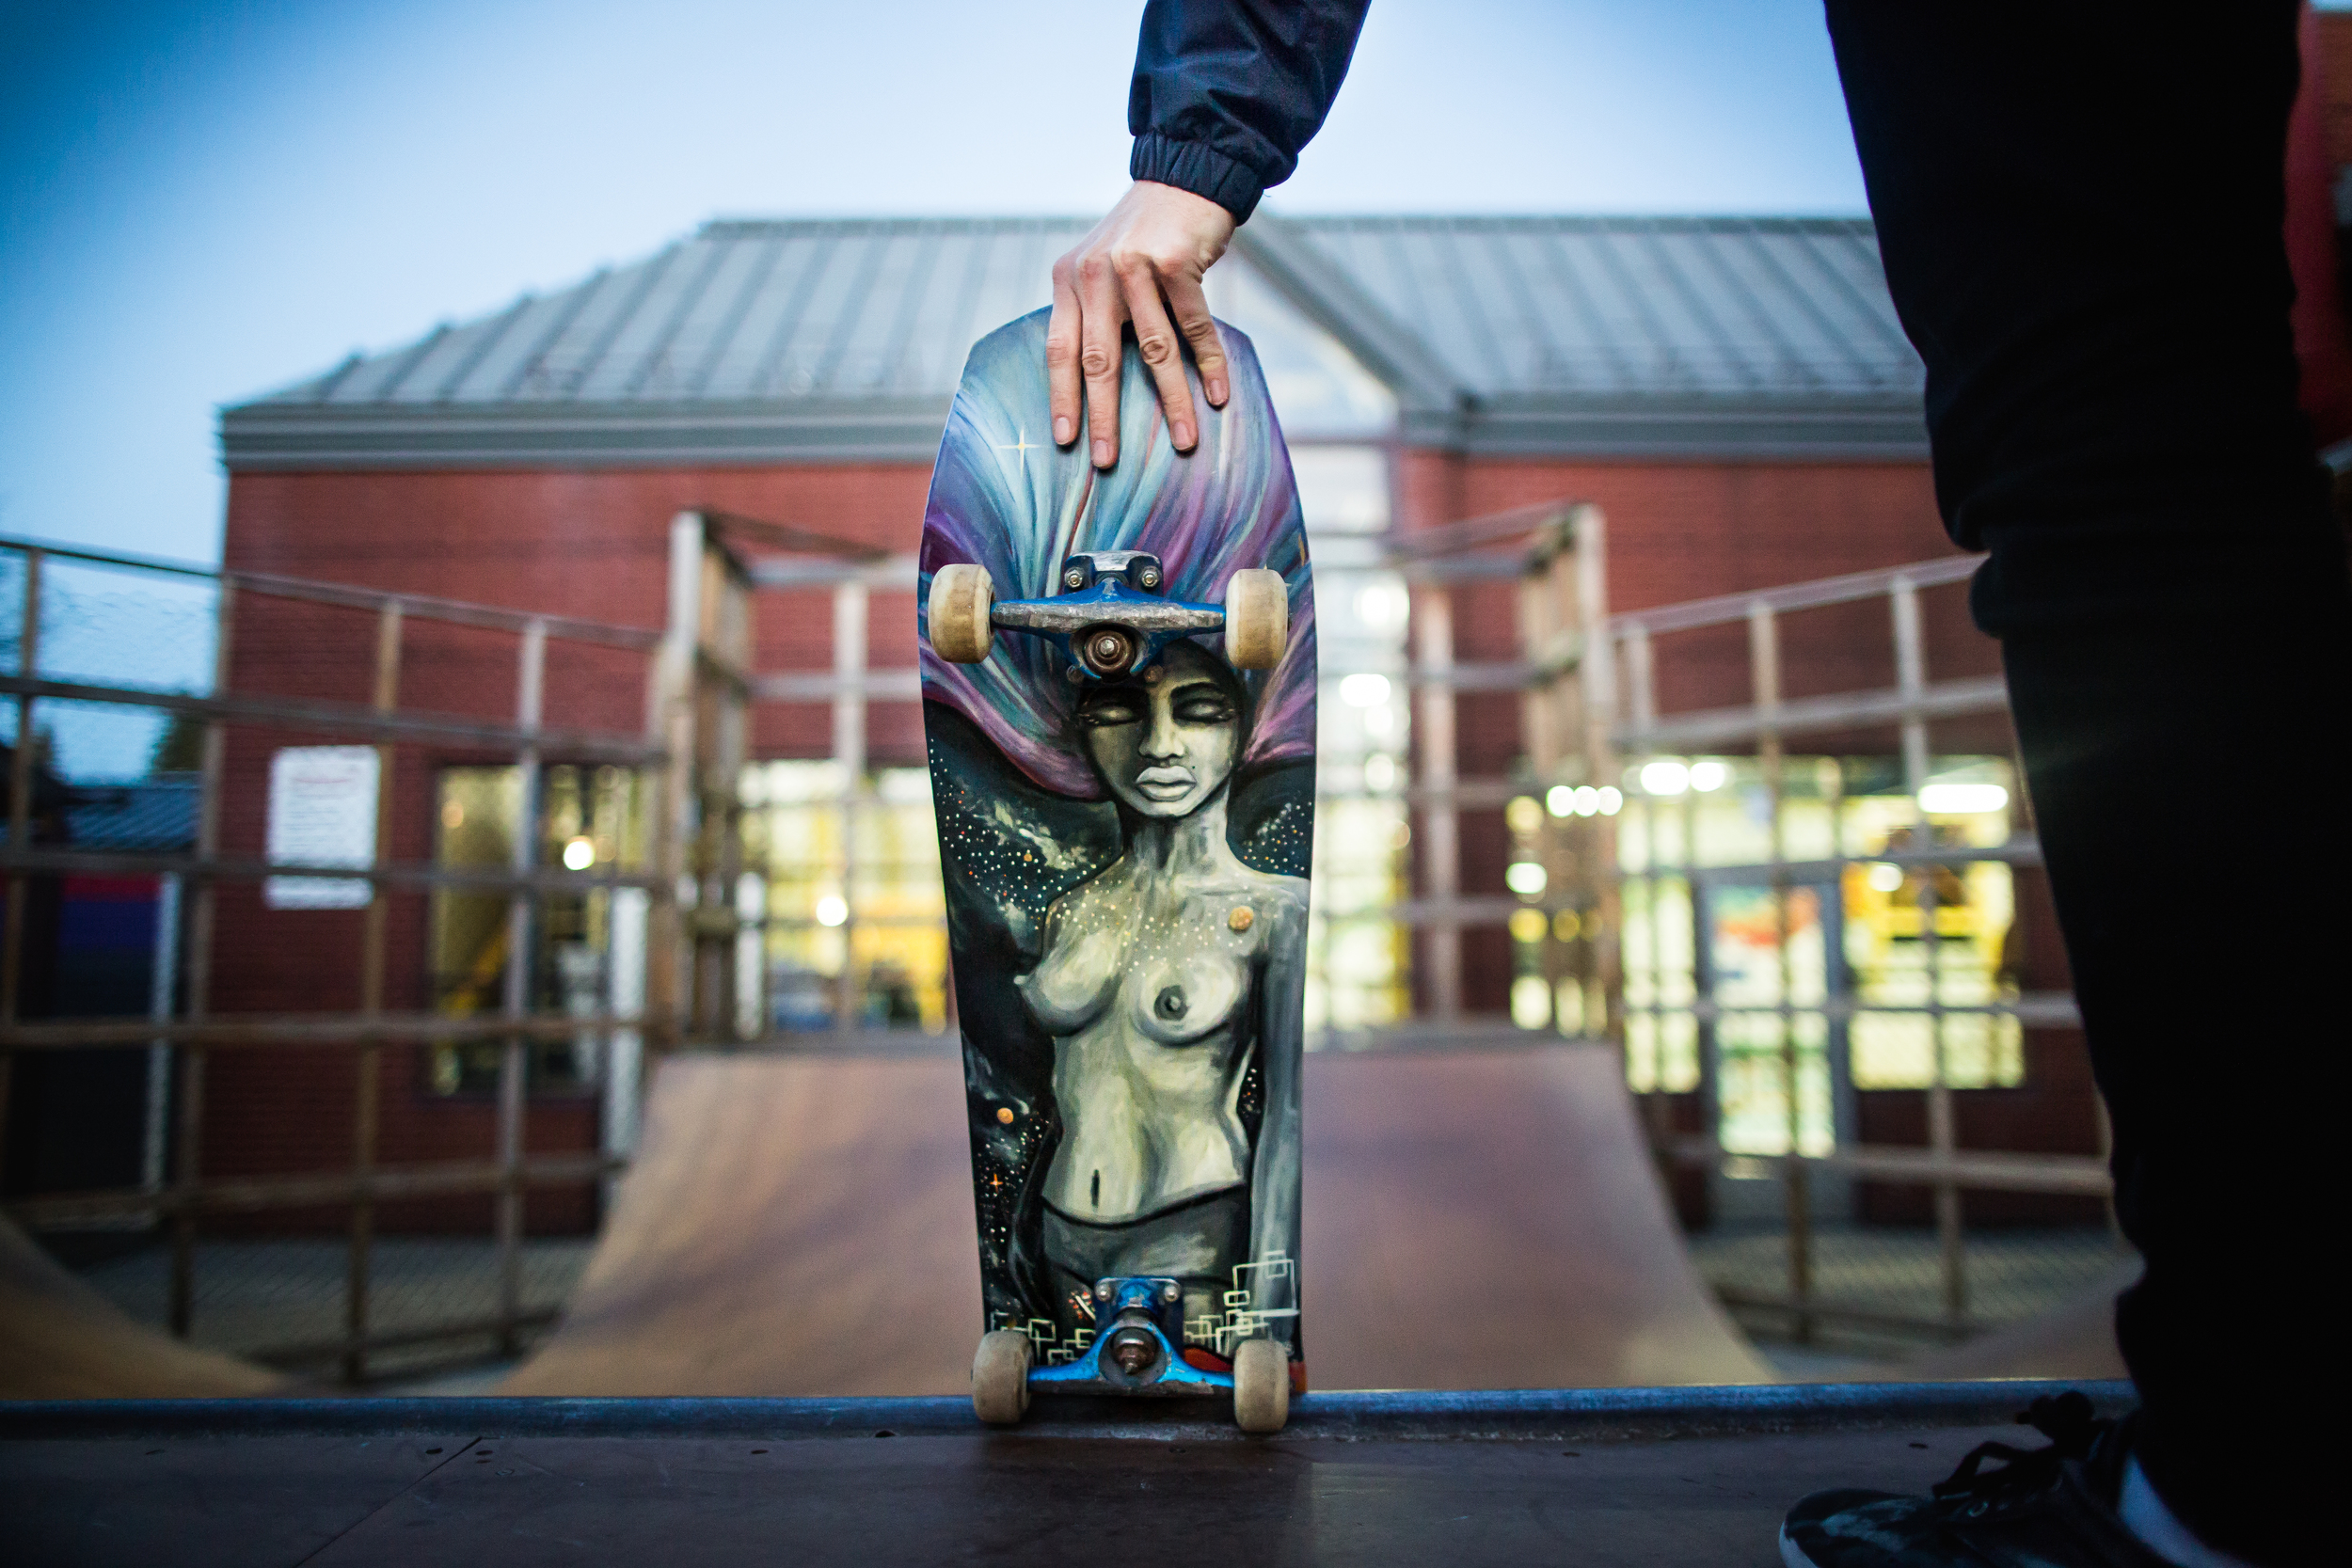 151023-181958-SkylerSkateboarding_DavidJohnsonPhotography_Mailyne Briggs_Dream Love Grow Art-0081.jpg